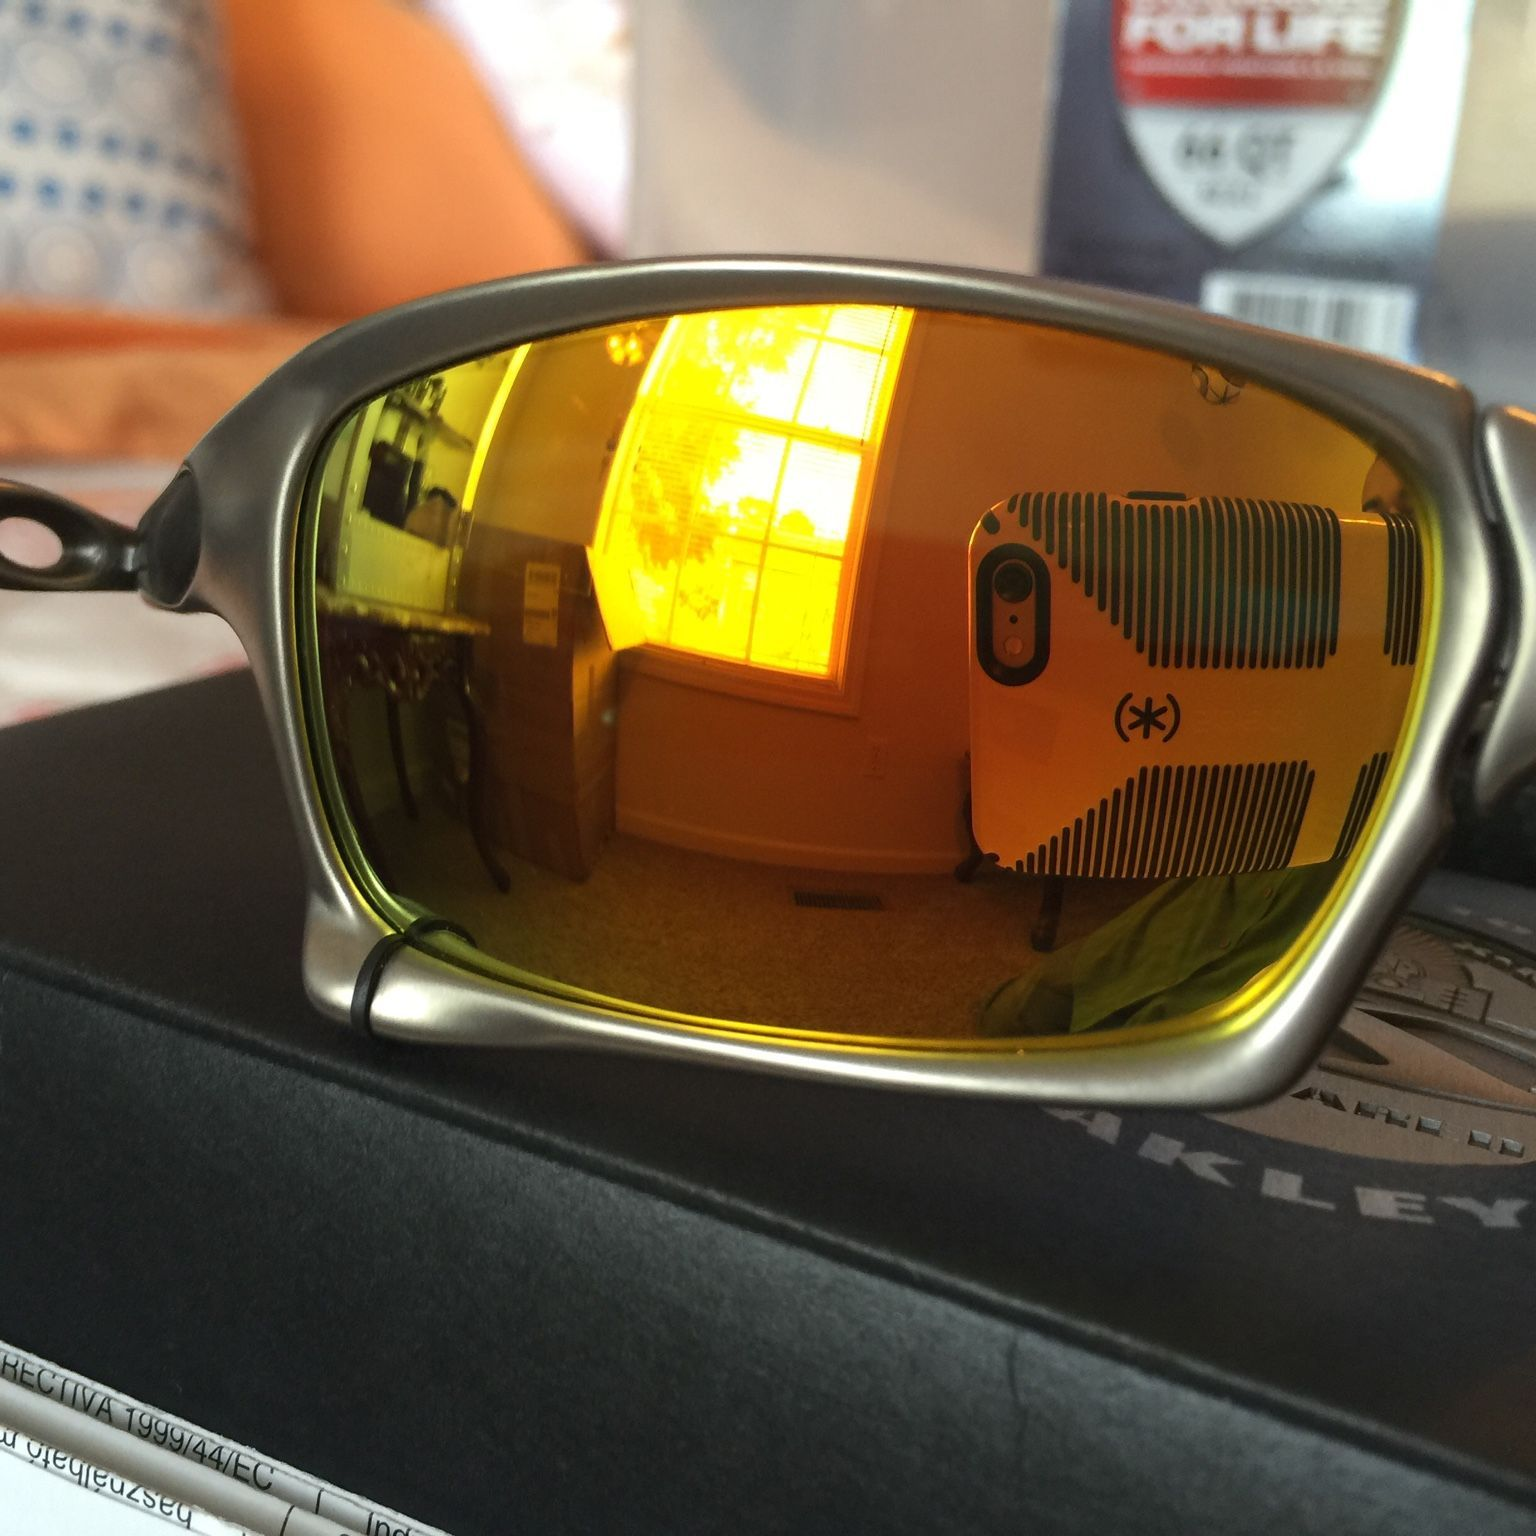 ***GONE*** XS - Plasma/ Fire Polarized $400 - 1a494c958366b461a7074707b3730438.jpg